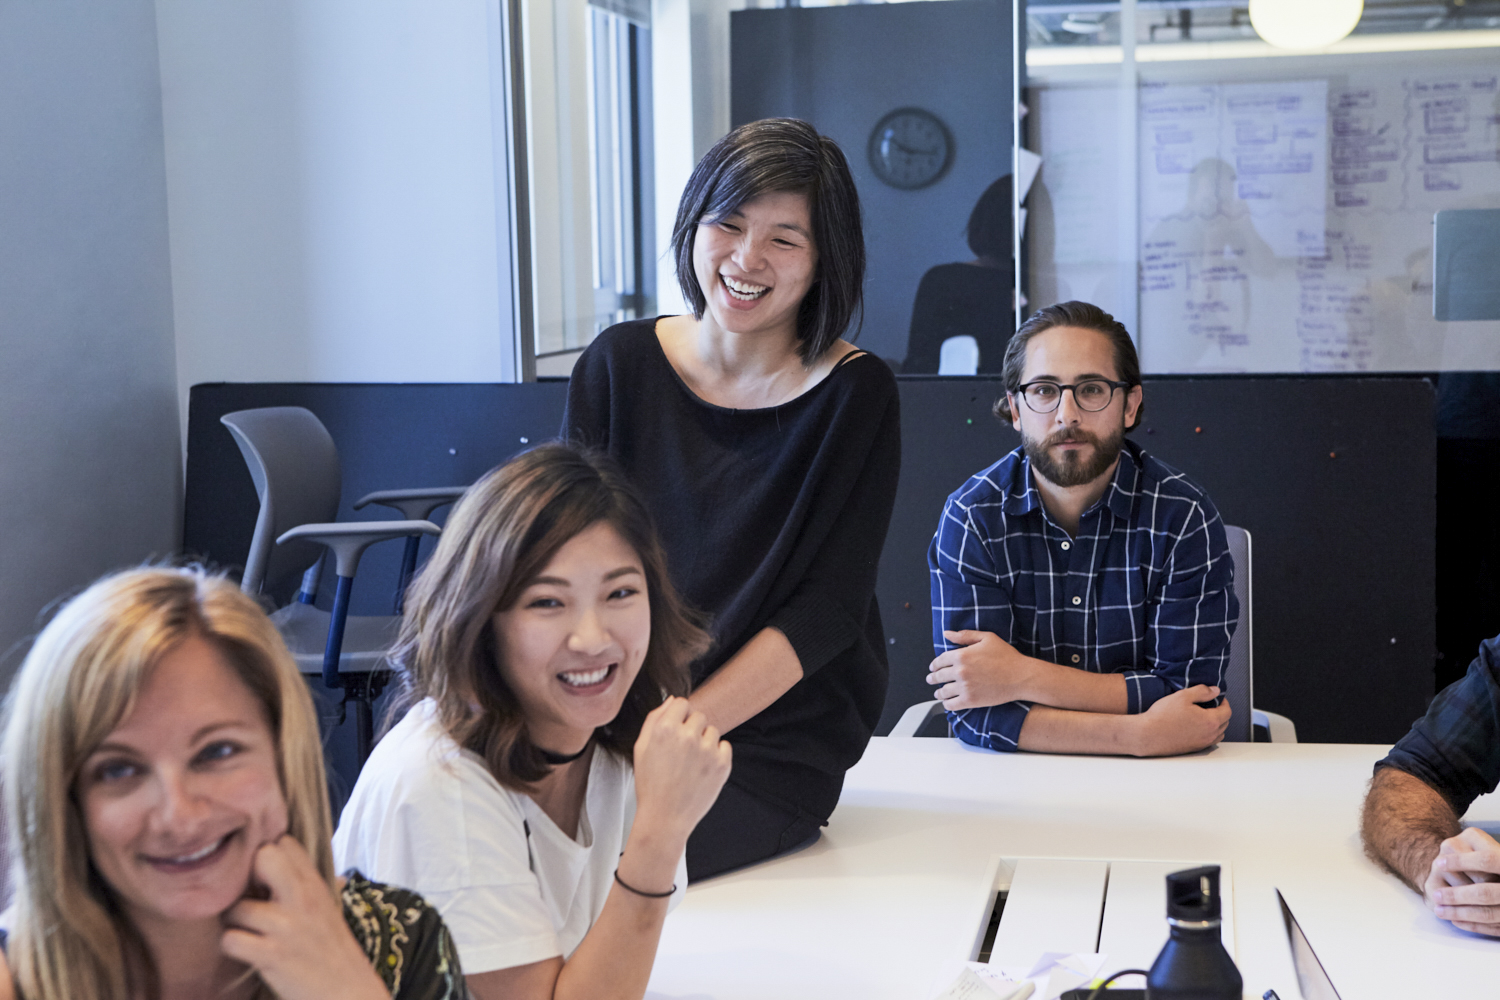 Audrey Liu, Director of Product Design at Thumbtack for Designer Fund.